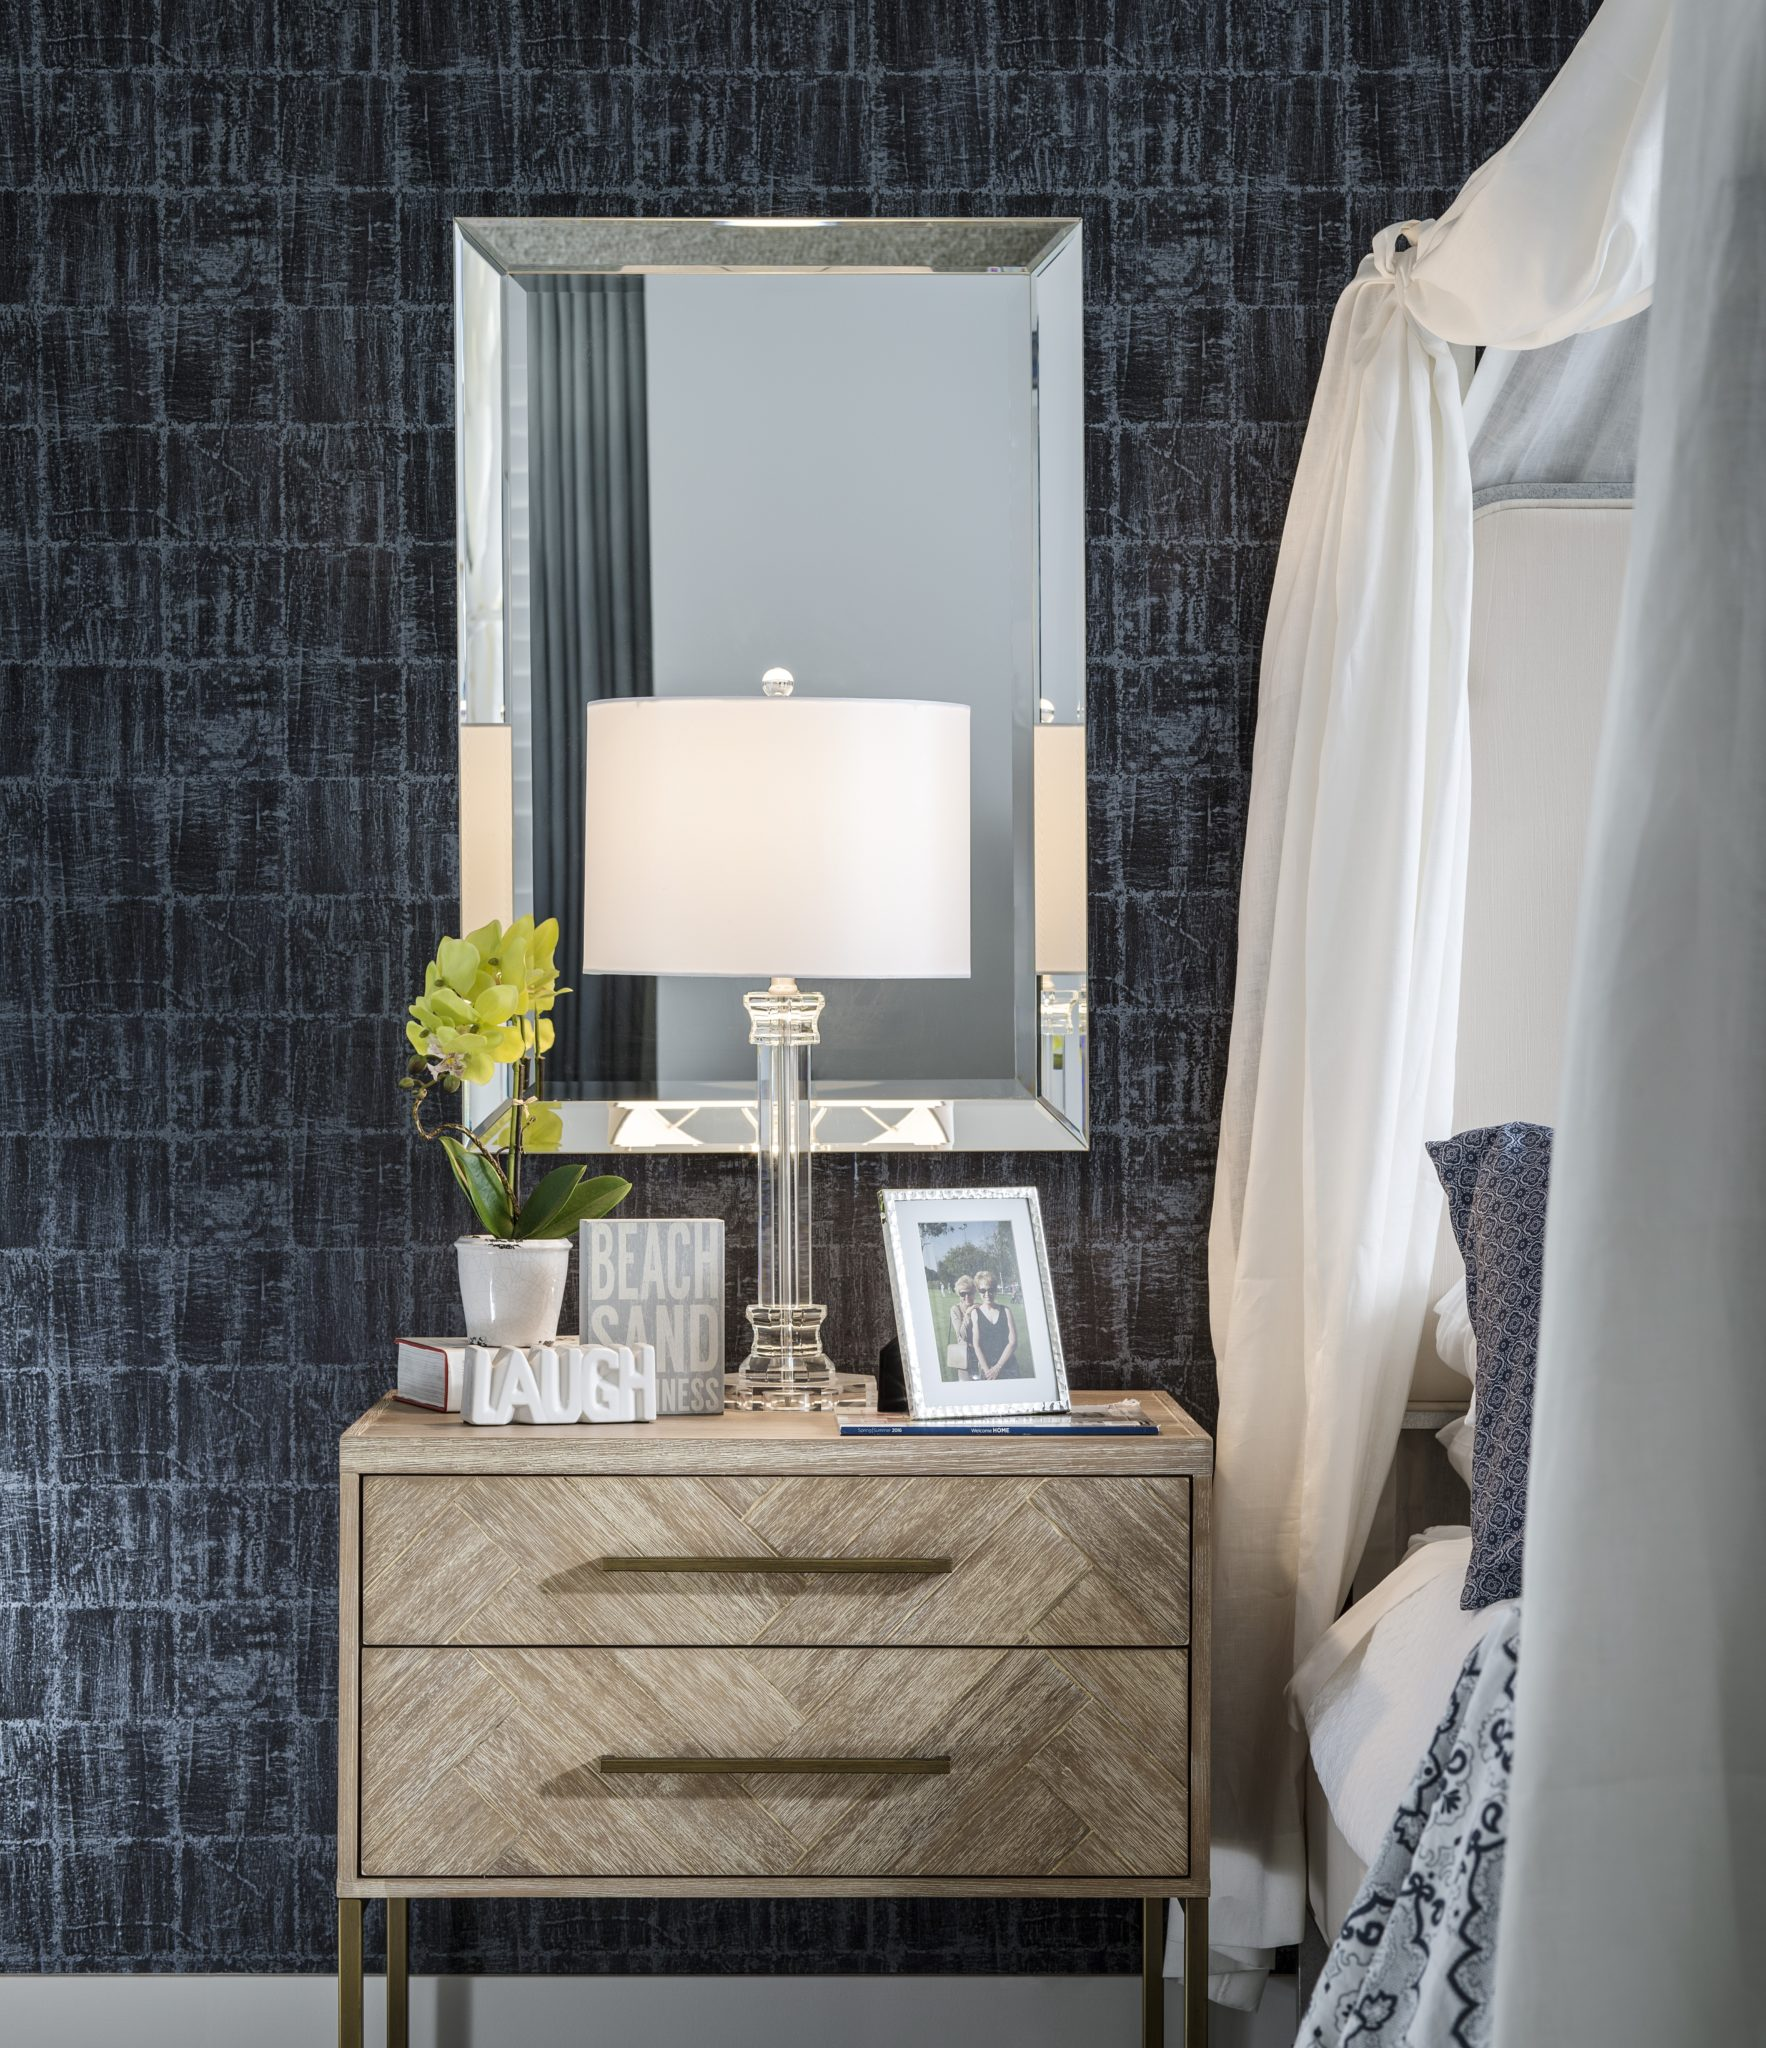 Wallpaper Accent Wall and Reclaimed Wood Night Stand by SUZA DESIGN